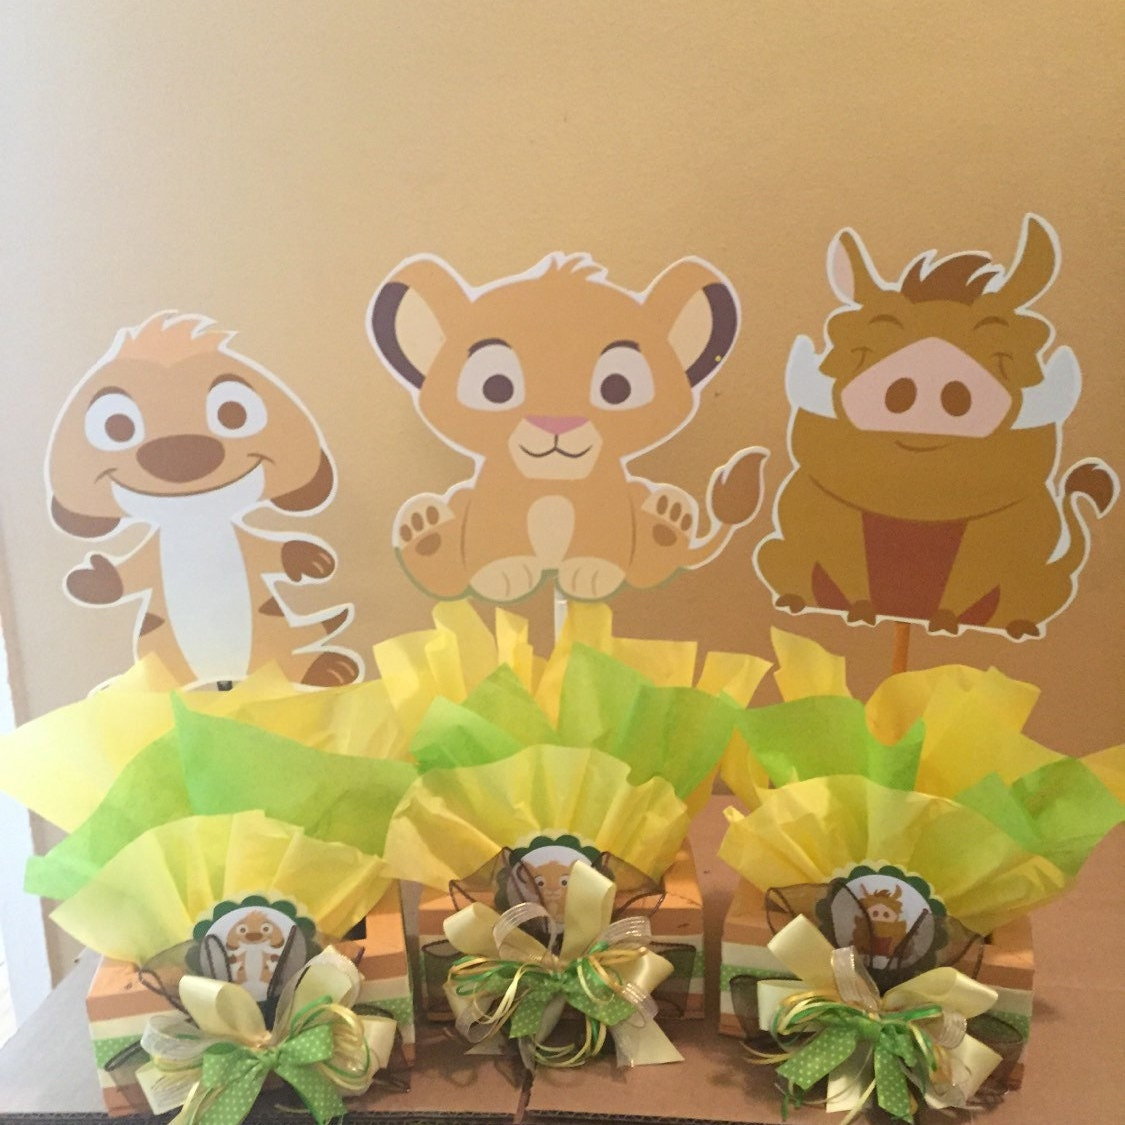 Lion Baby Shower Ideas: Baby Lion King Inspired Centerpiece Simba Pumba Nala Timon